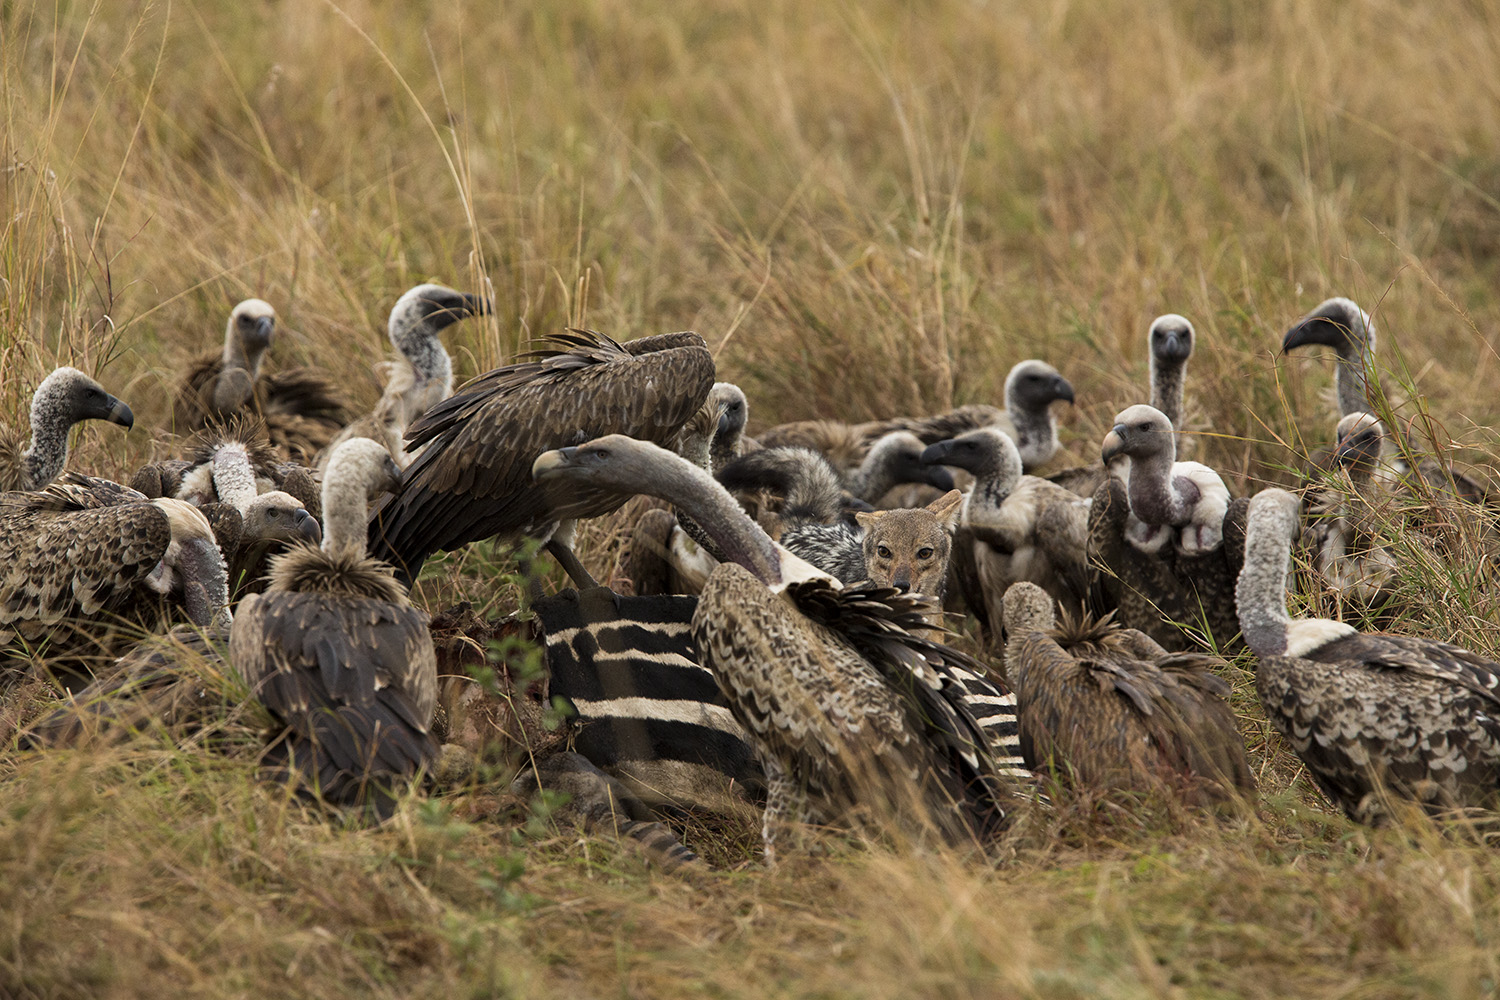 Jackal versus vulture over a zebra carcass